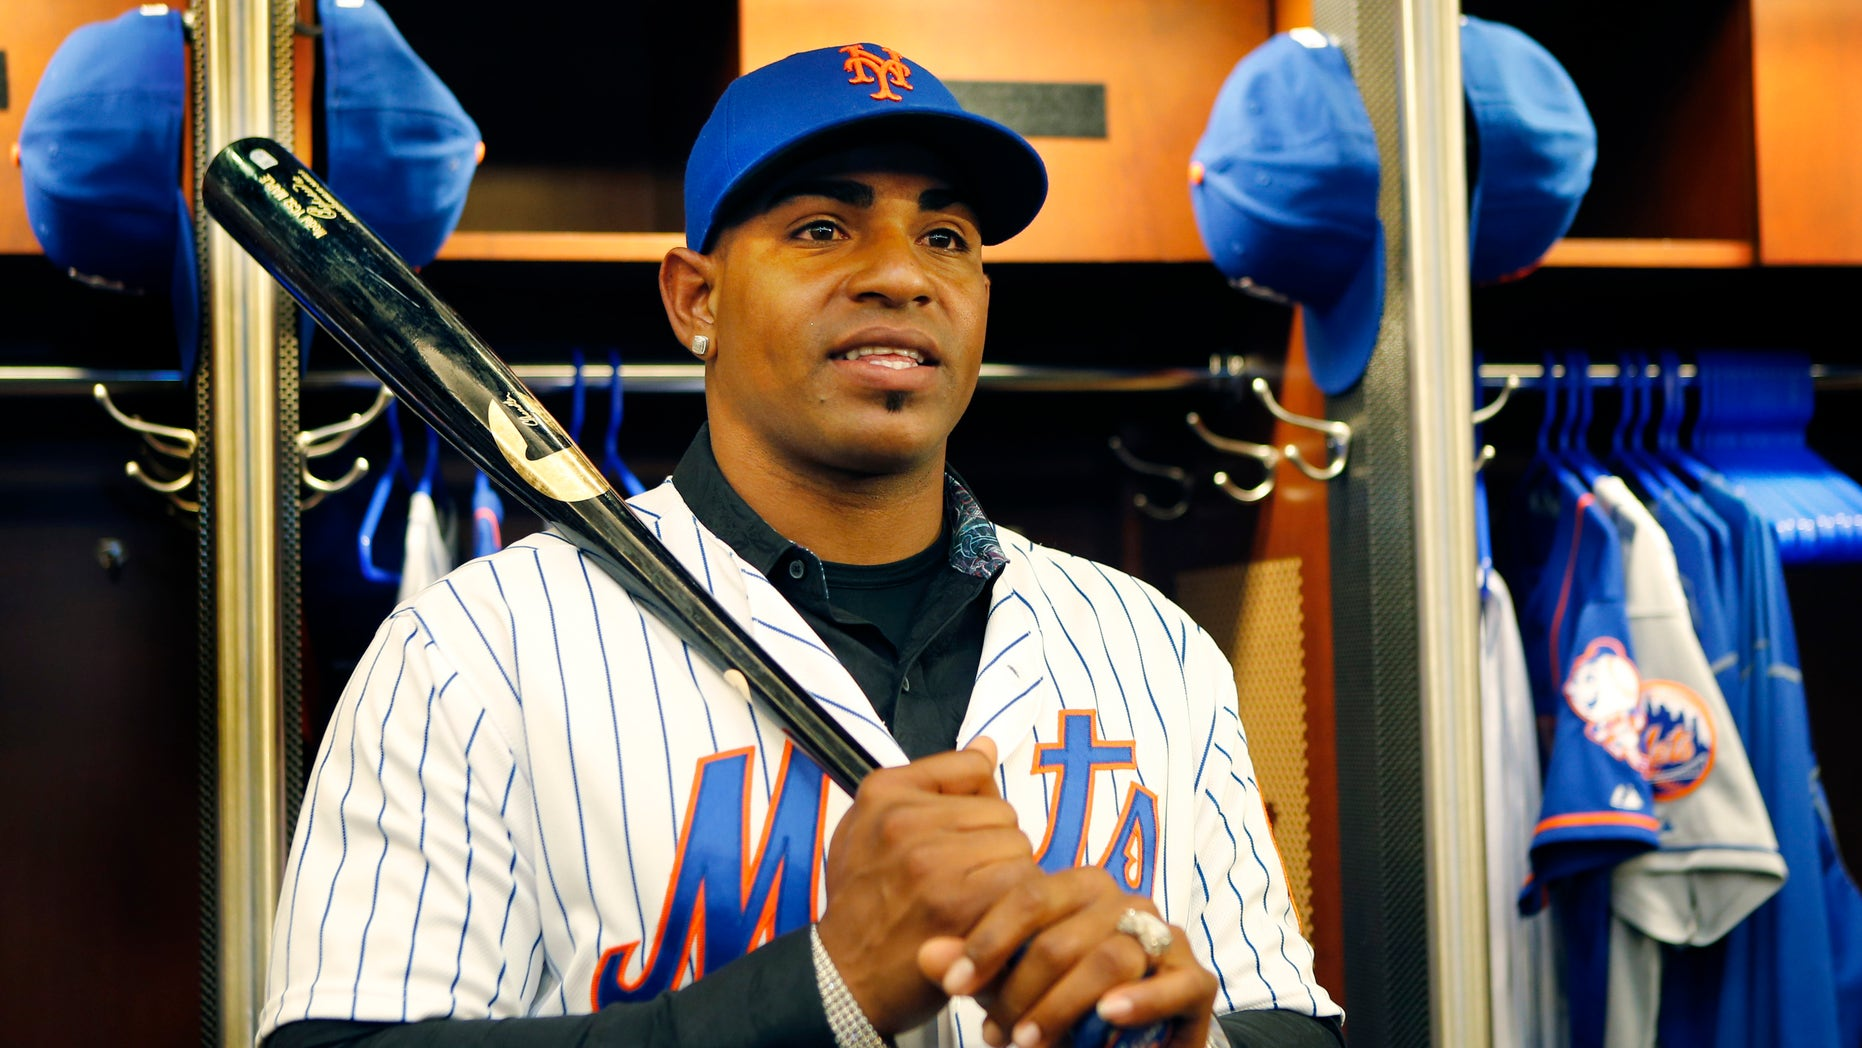 New York Mets Yoenis Cespedes holds a bat as he poses in the clubhouse after a baseball press conference at CitiField in New York, Wednesday, Feb. 3, 2016. Cespedes agreed to a $75 million, three-year deal with the team. (AP Photo/Kathy Willens)